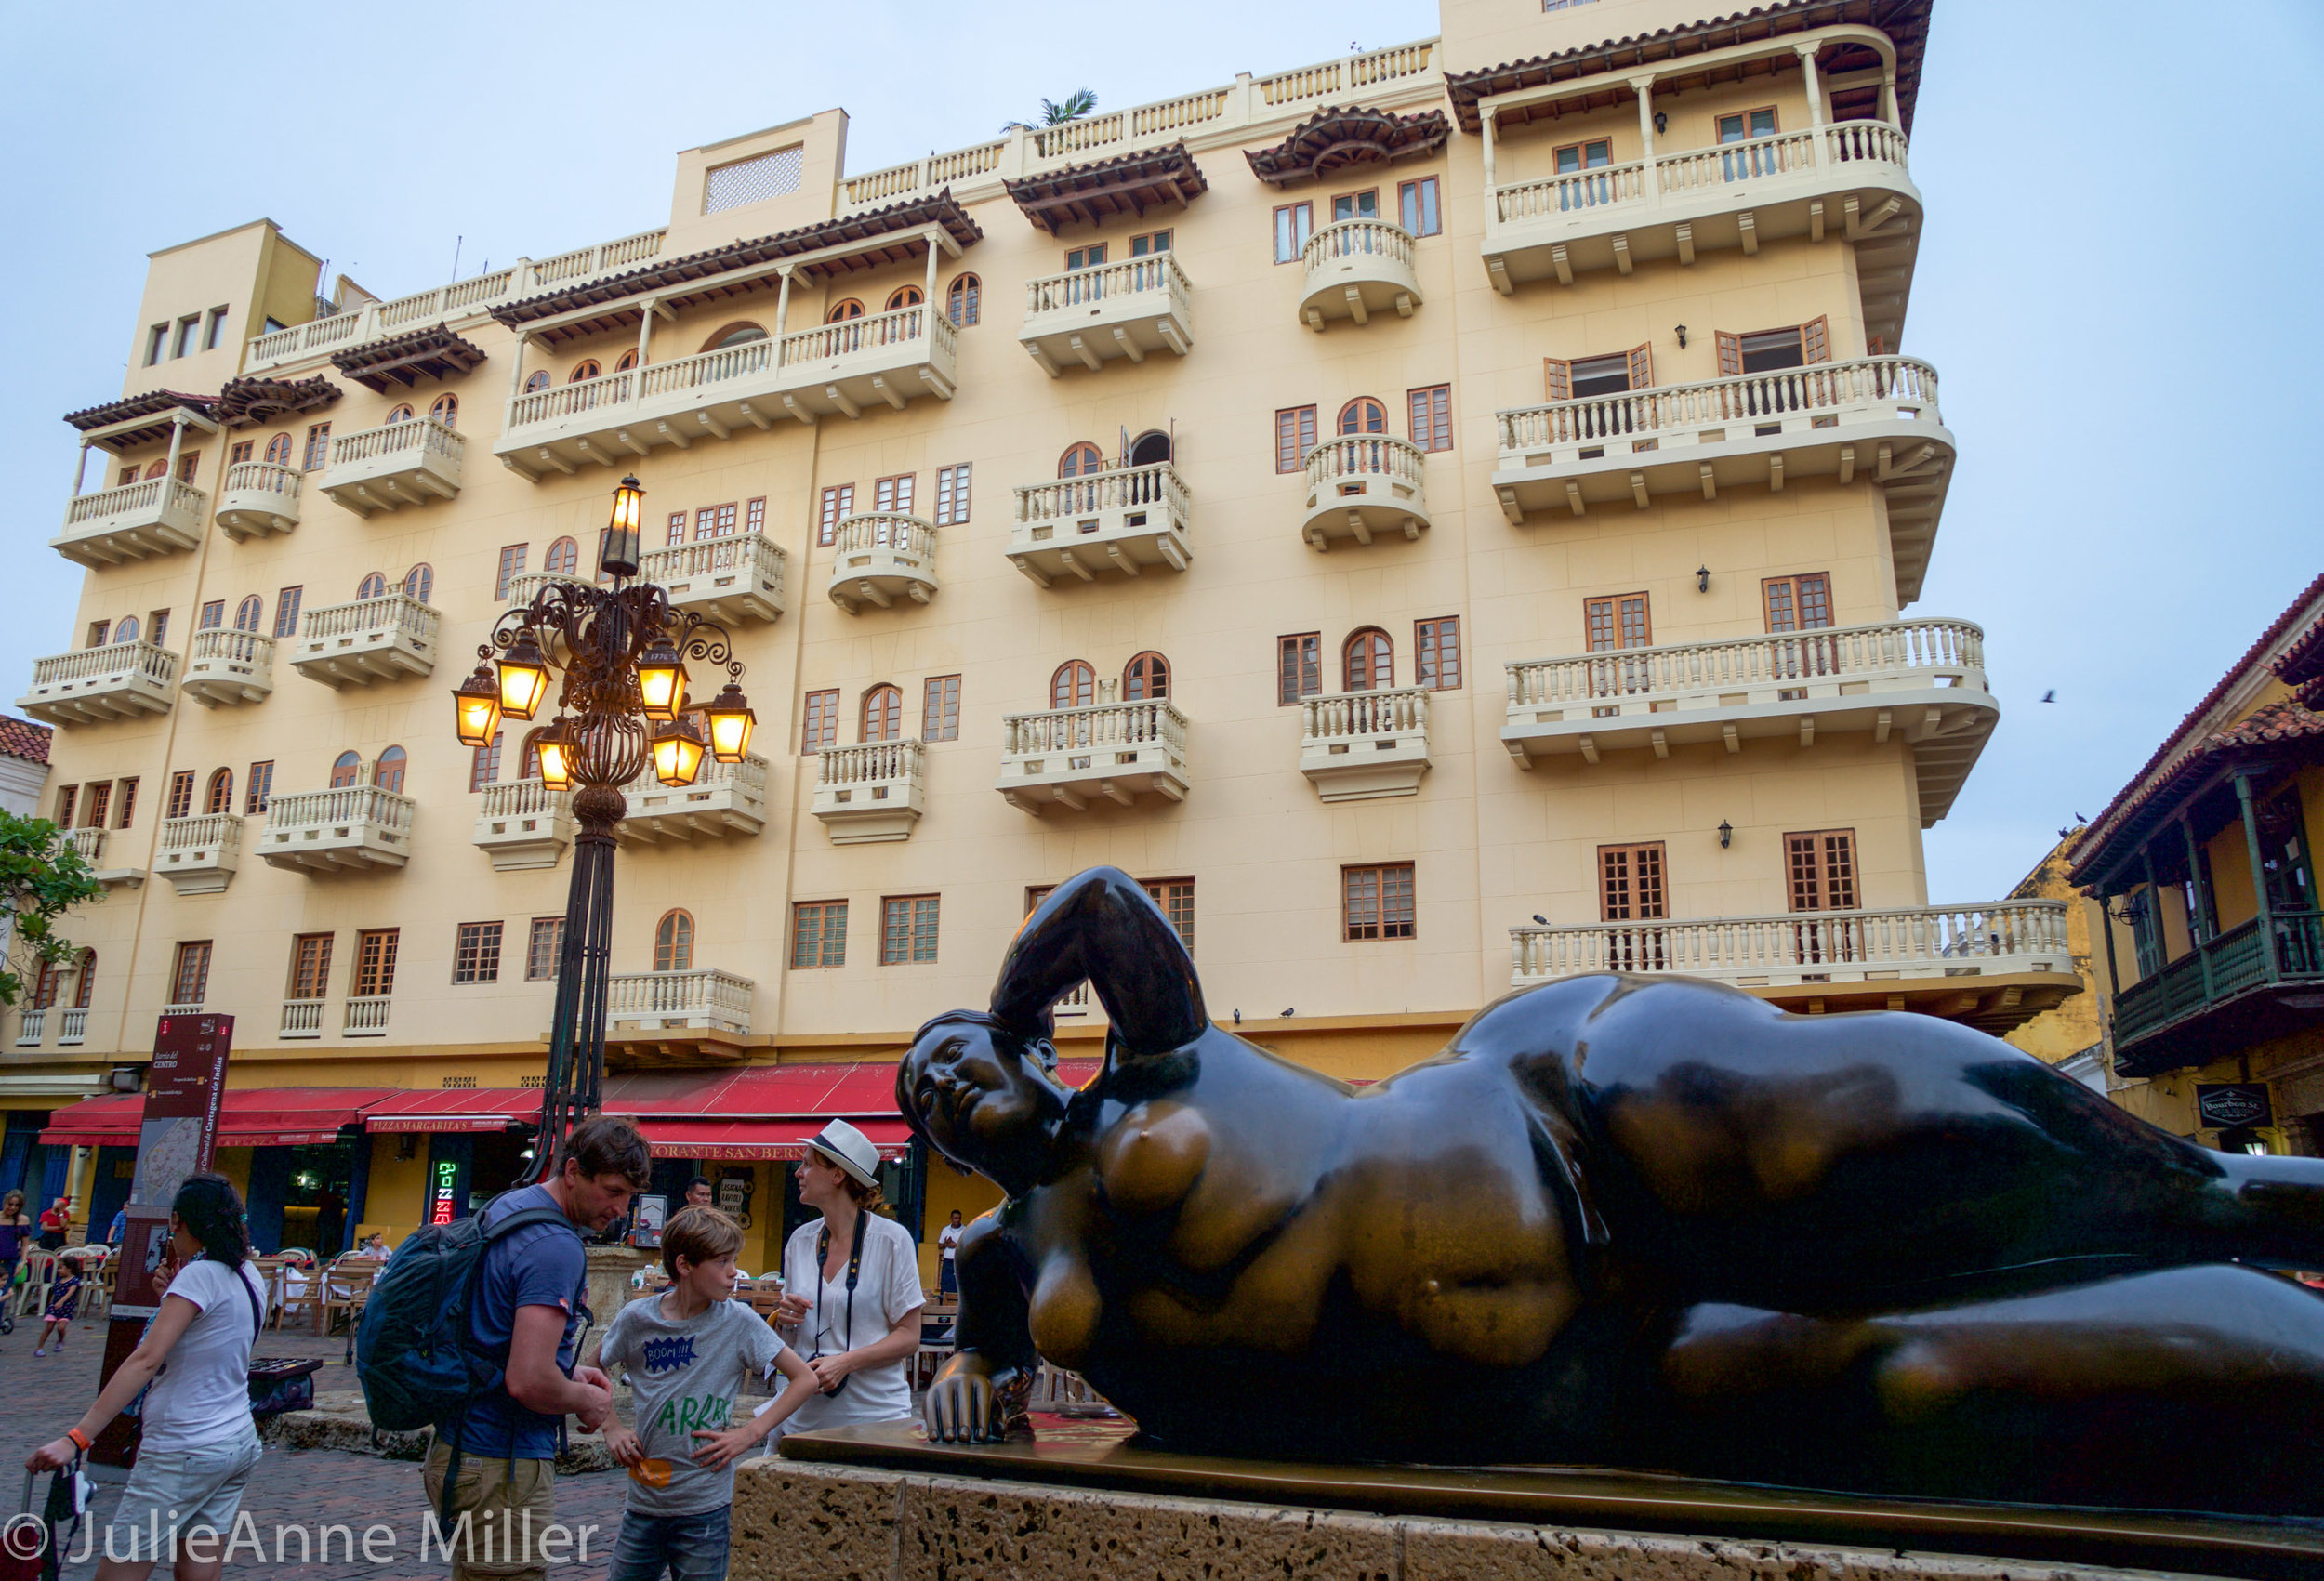 Botero's Fat Lady Sculpture